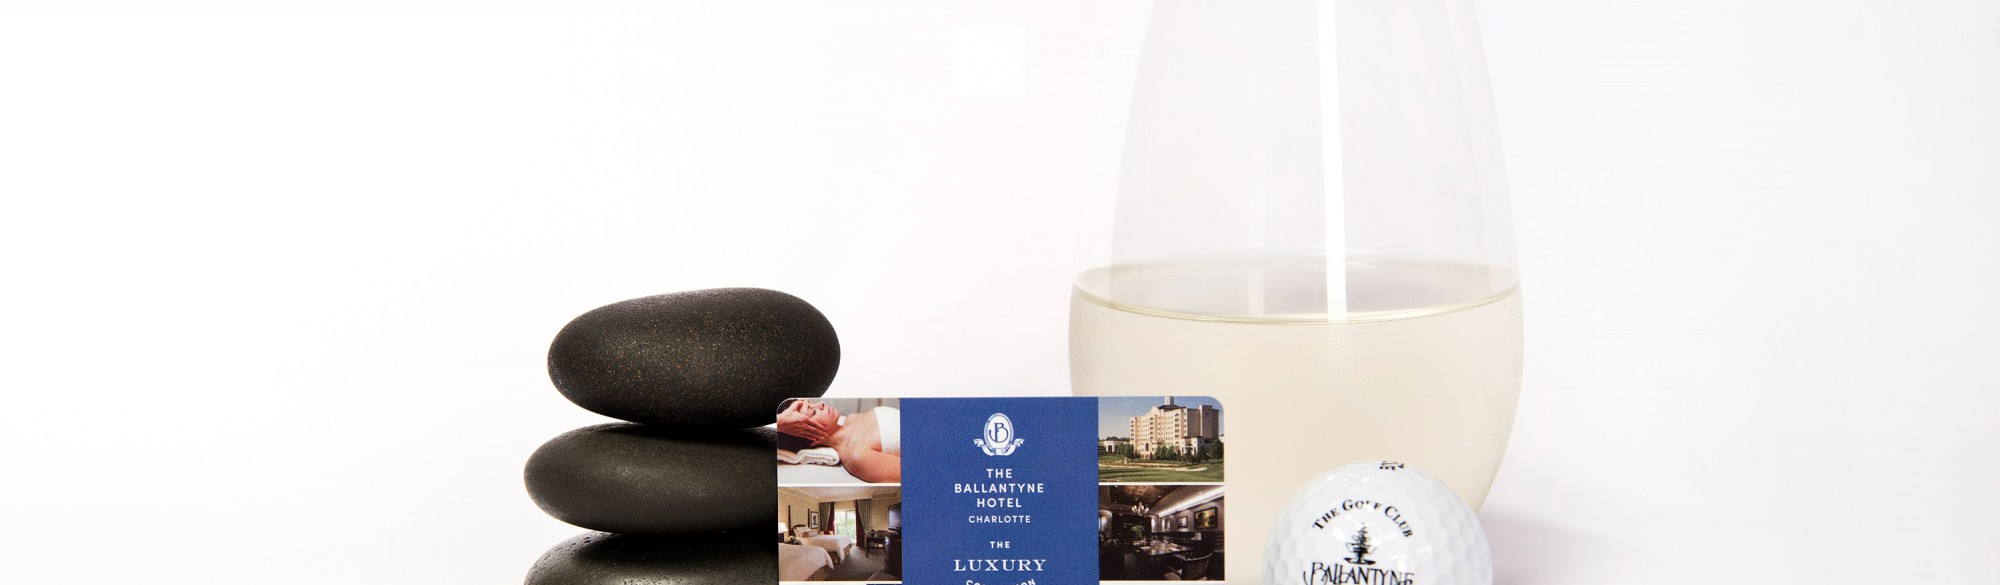 Gift cards at the ballantyne in charlotte nc give the gift of a luxurious experience negle Image collections